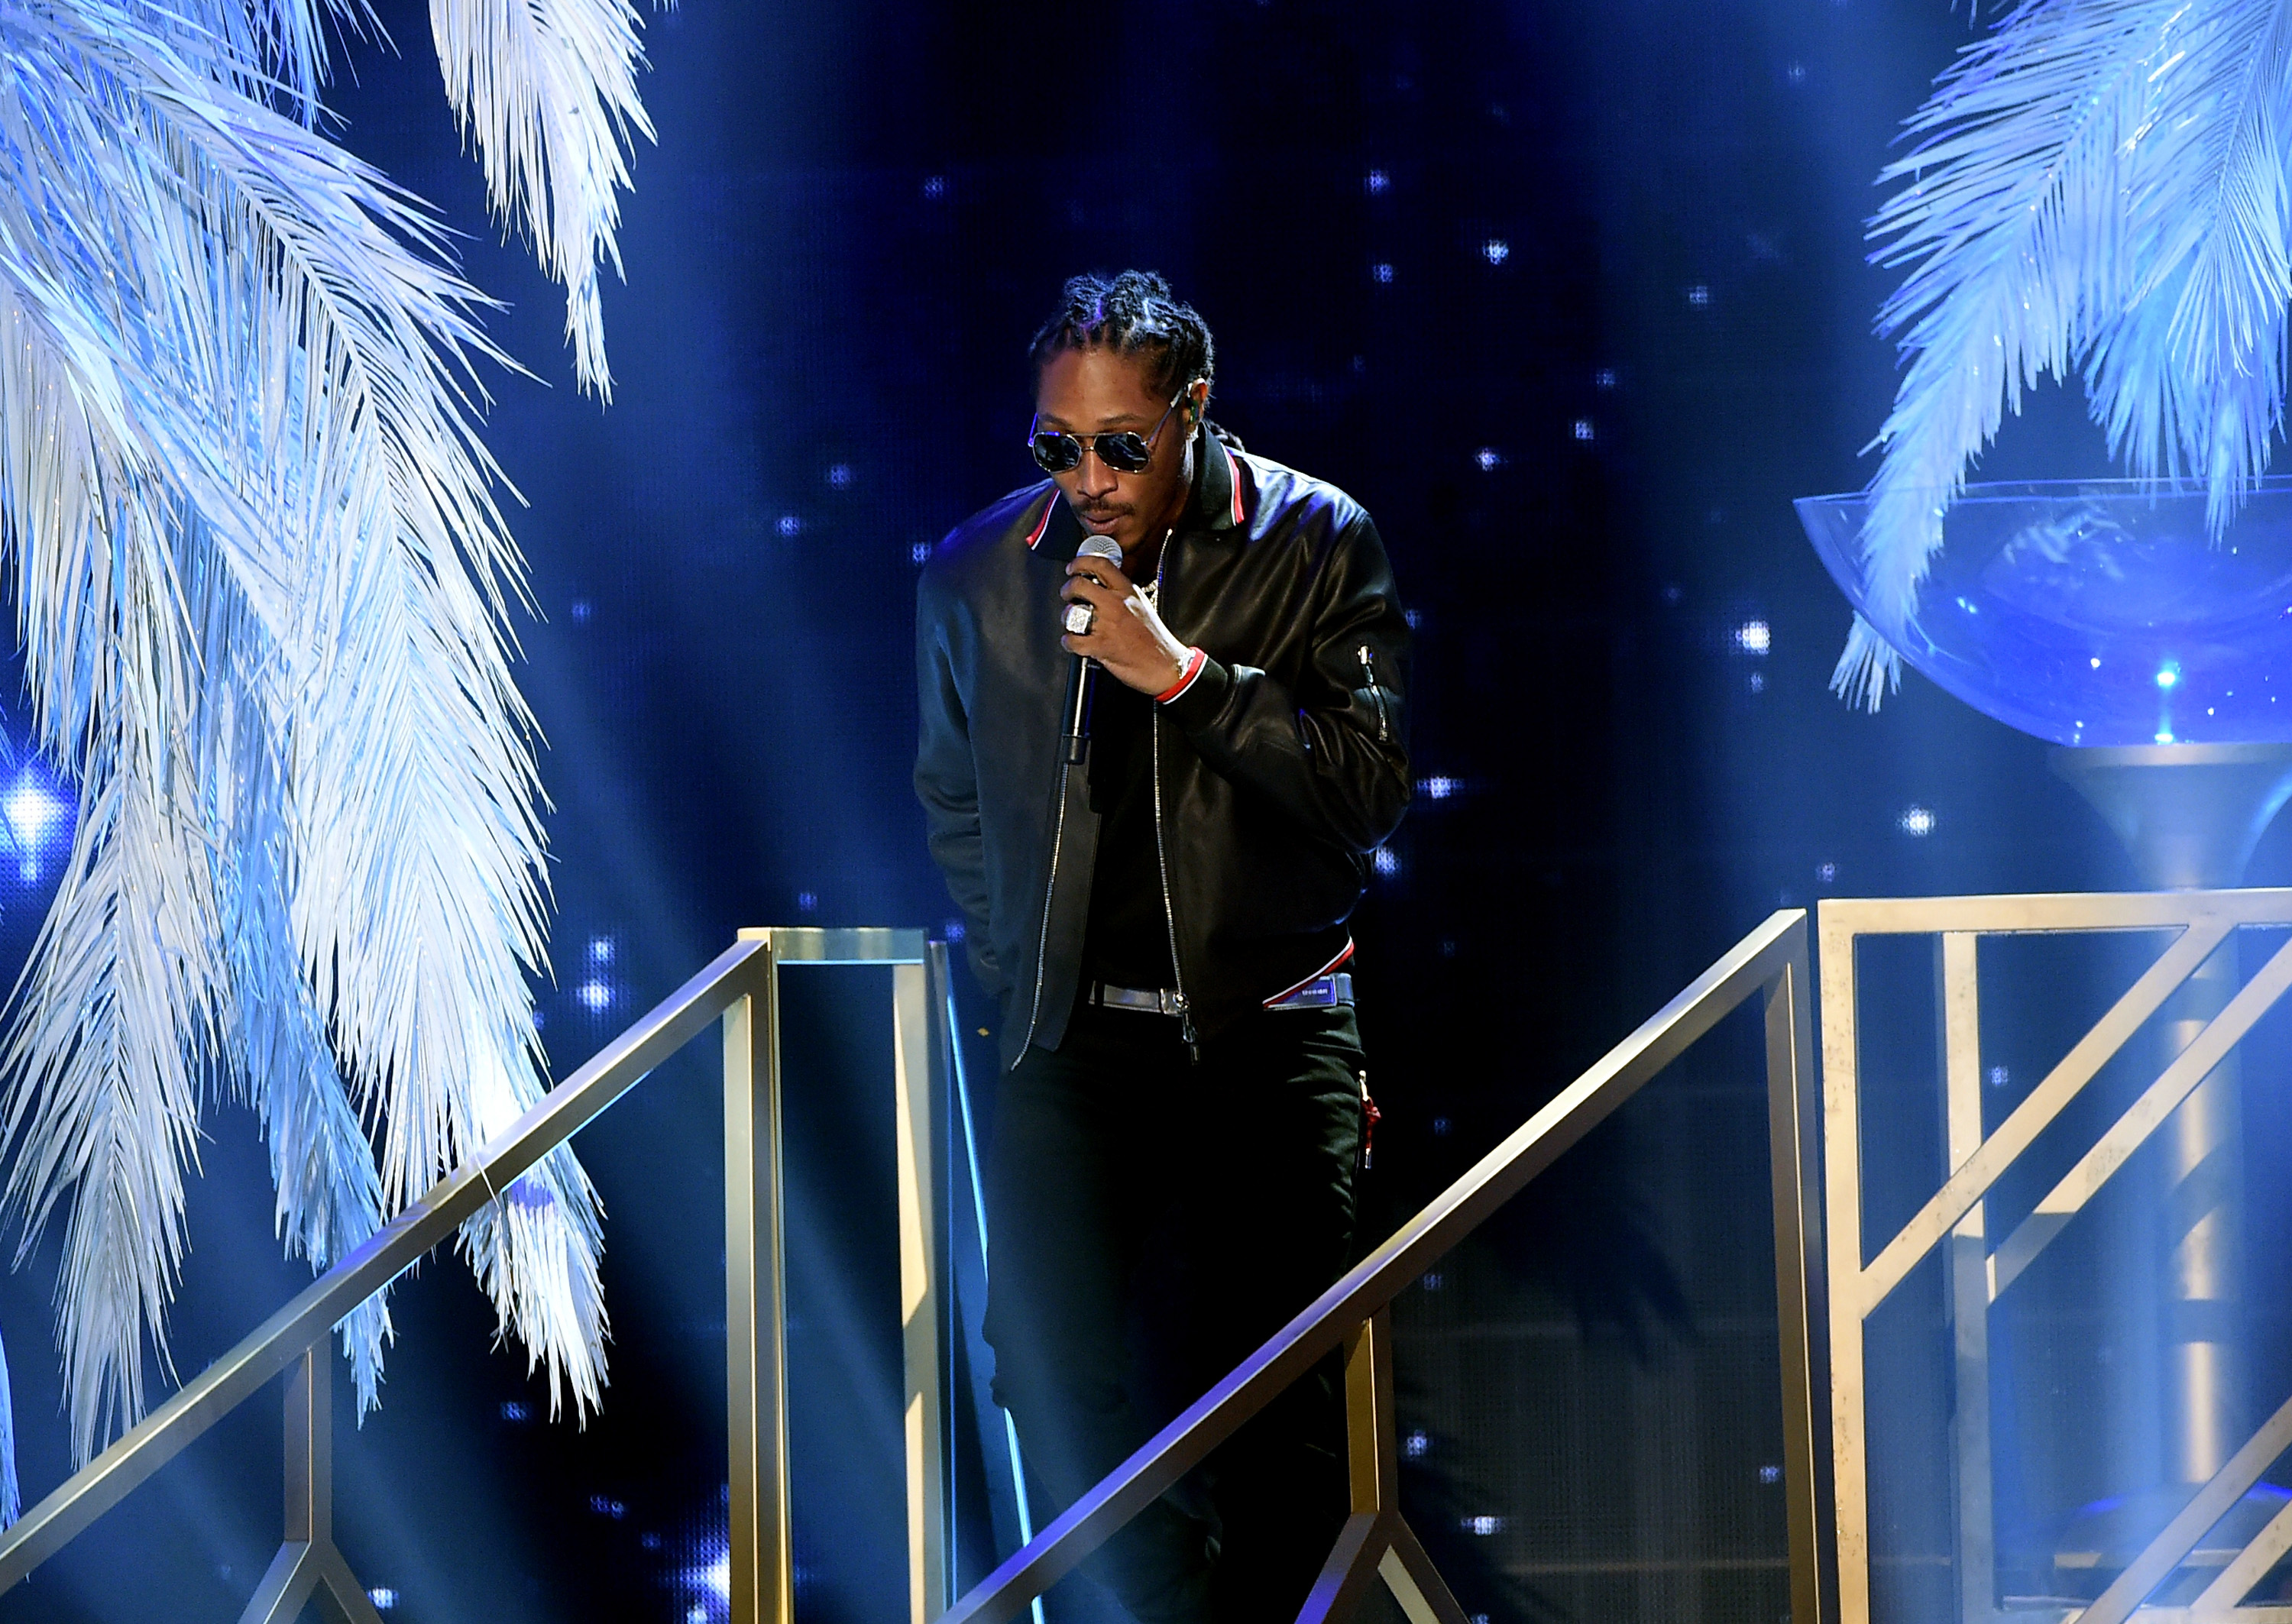 Future performs during the American Music Awards on November 20, 2016 in Los Angeles, California. (Photo by Kevin Winter/Getty)